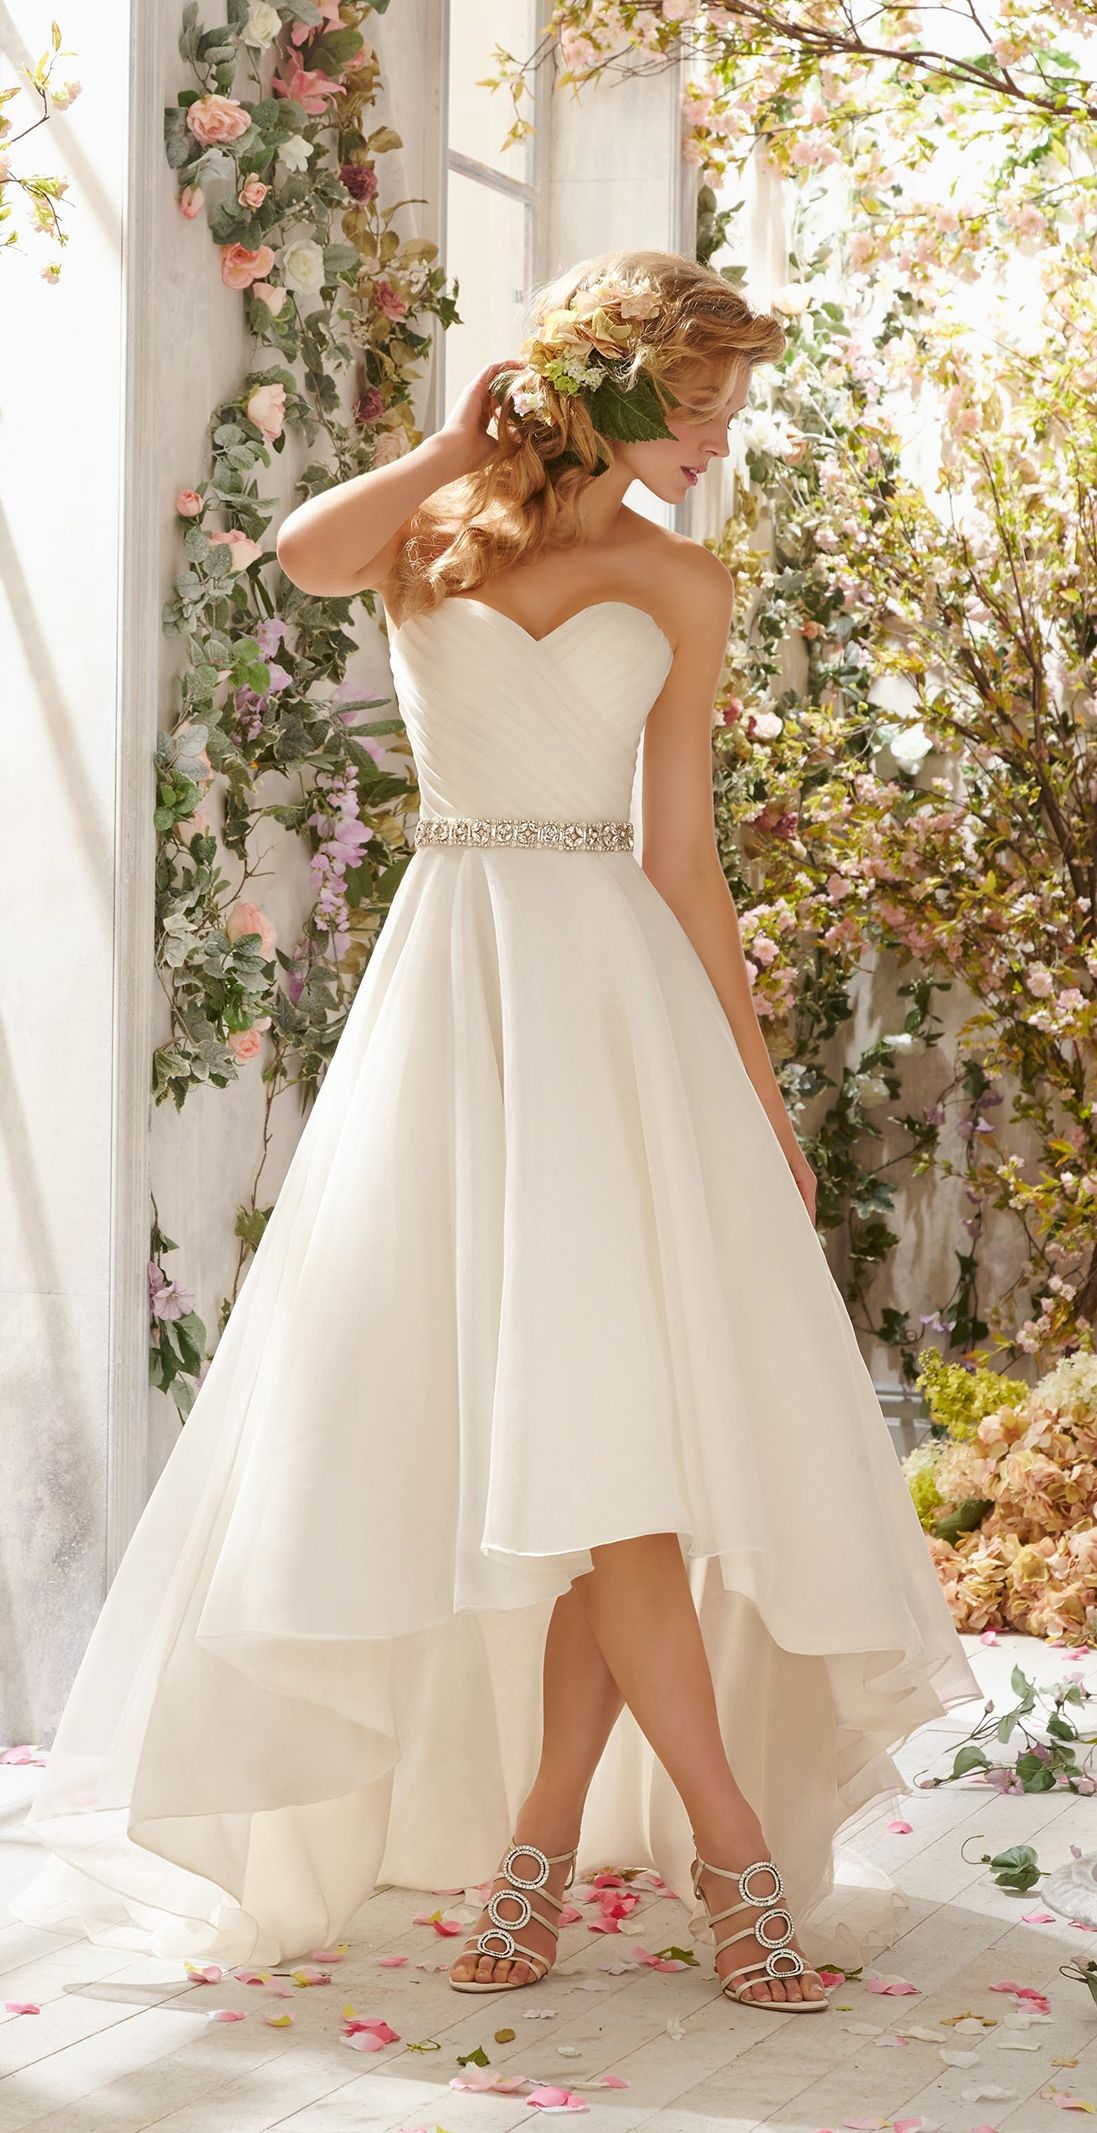 Short Wedding Dresses That Are Classy Sassy Wedding Dresses